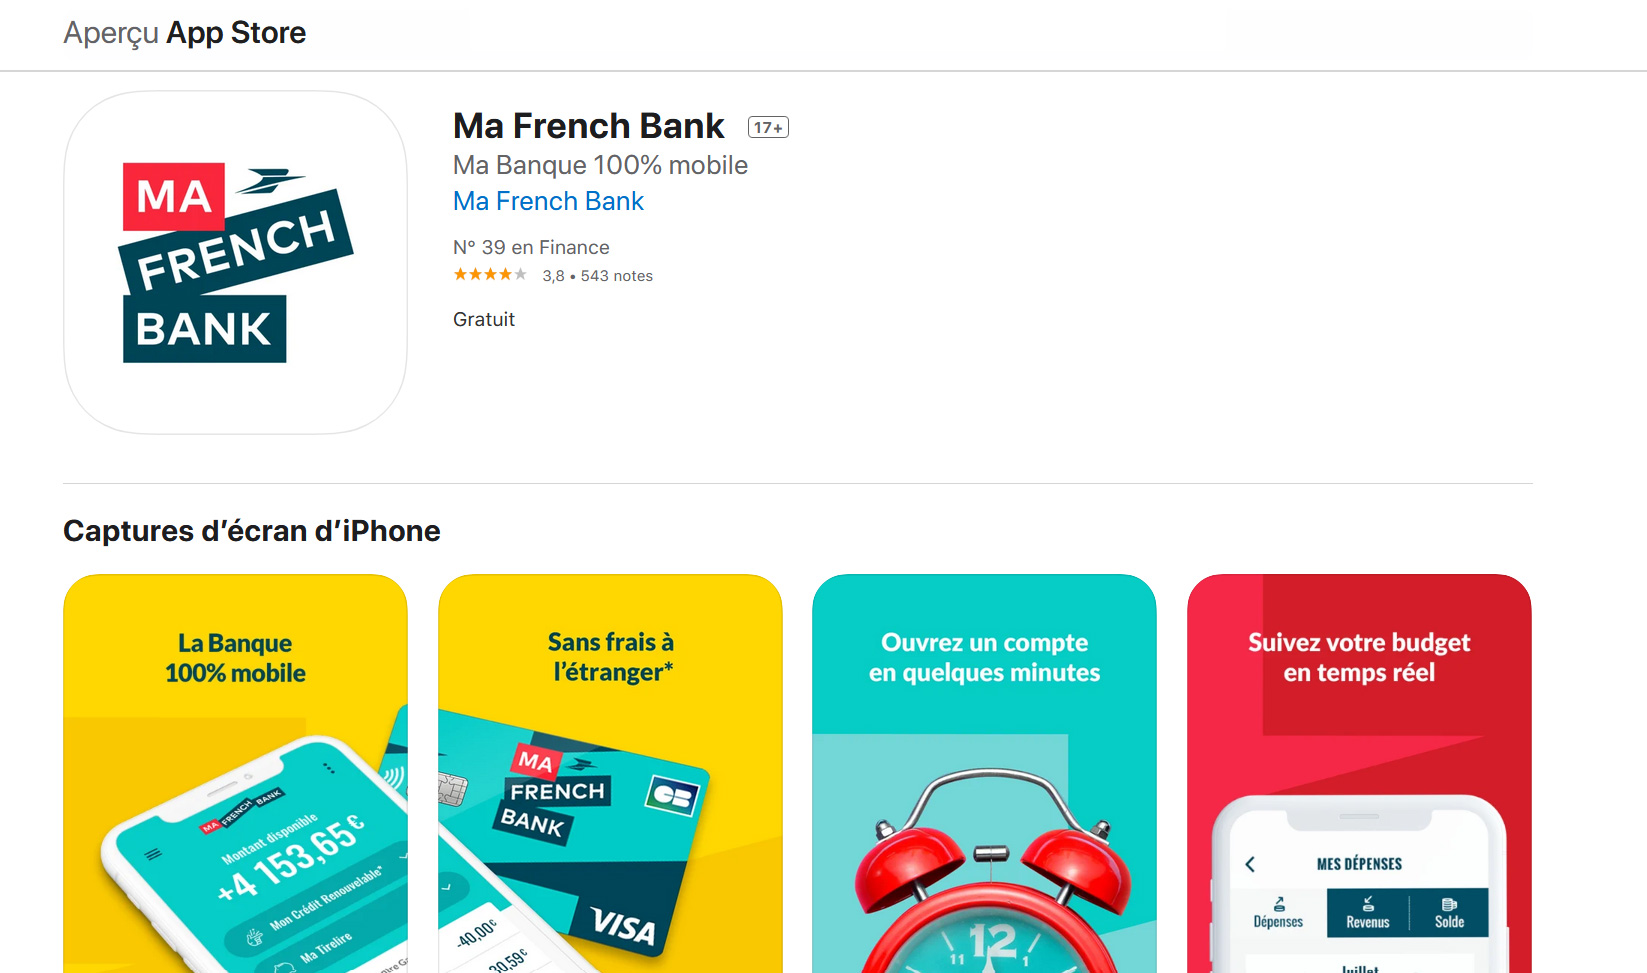 avis service client Ma French Bank